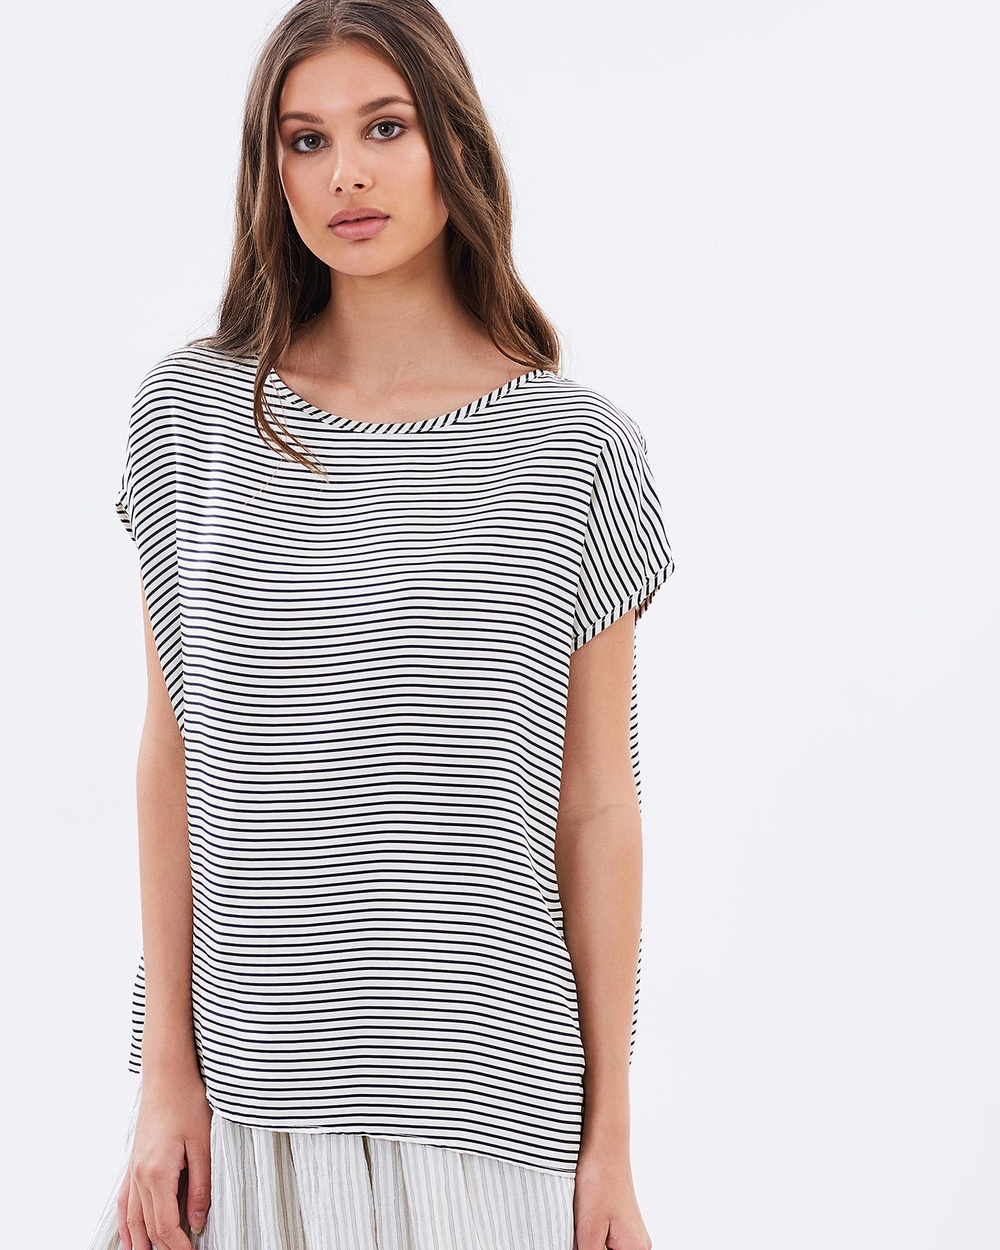 Primness Riviera Top Tops Navy Stripe Riviera Top